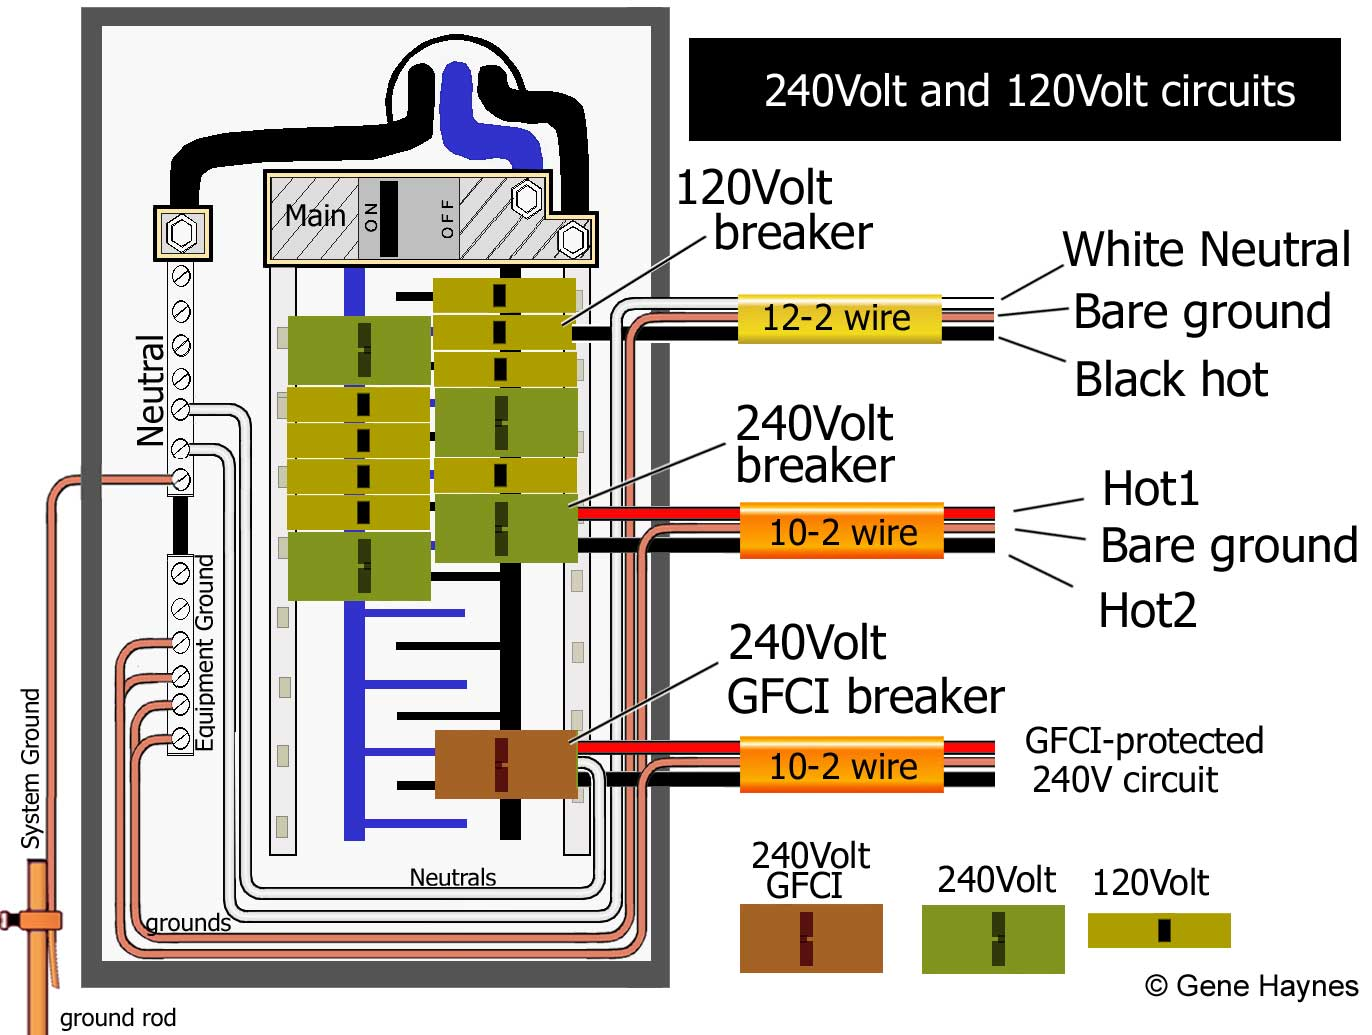 Illustration of subpanel with 120 volt GFCI breaker